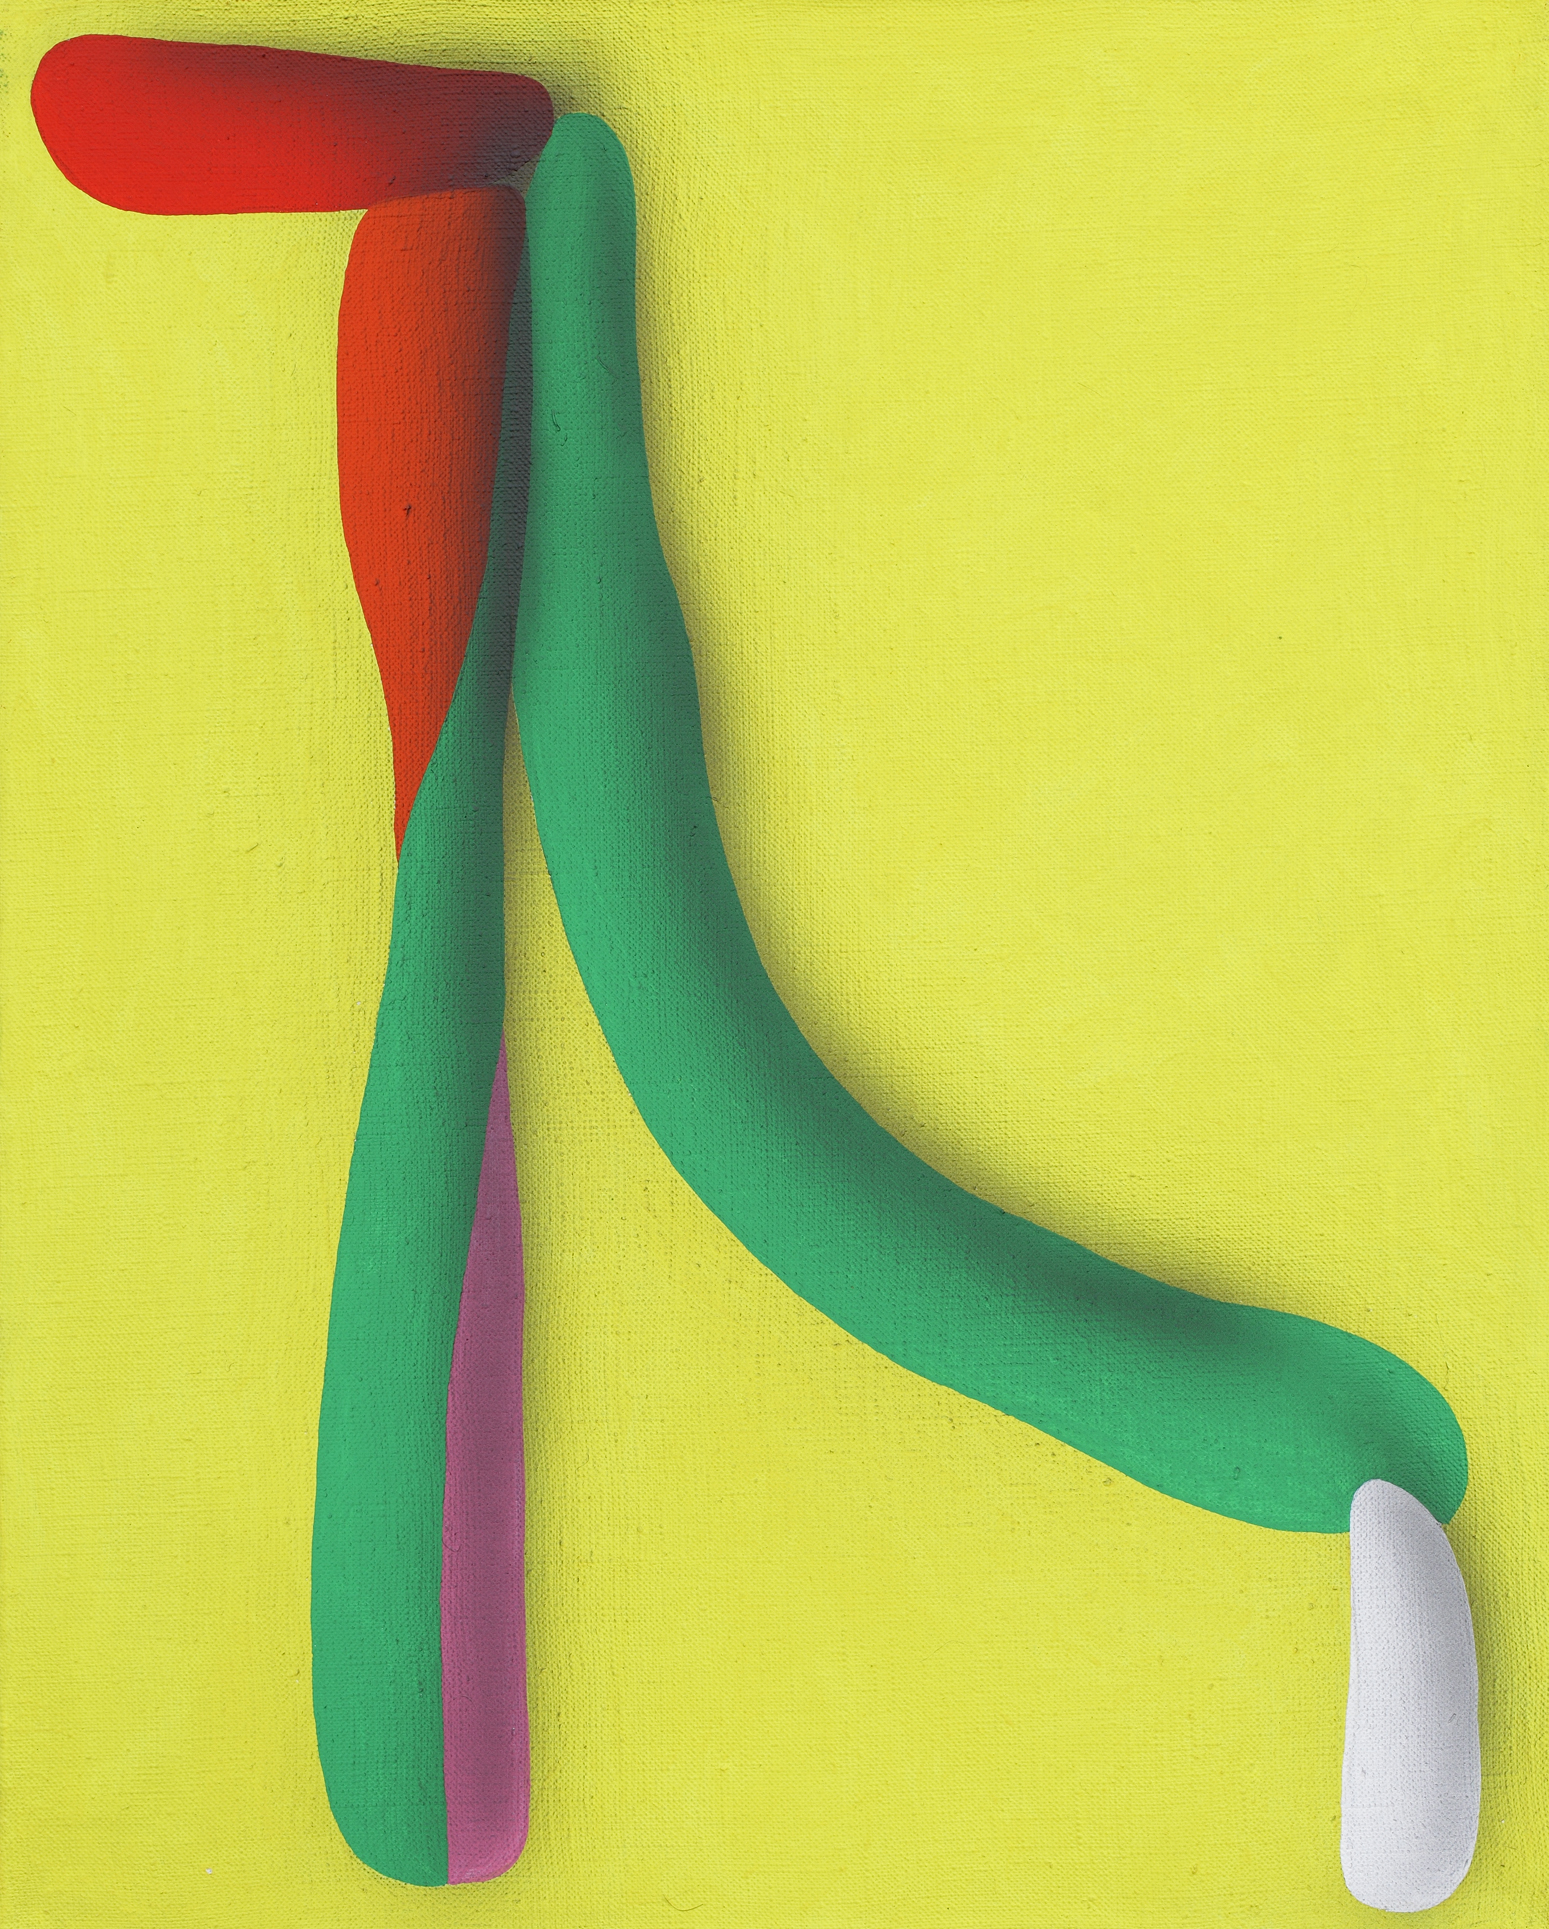 Elementary touching lines IV. 2010, acrylic on canvas, 50 x 40 cm